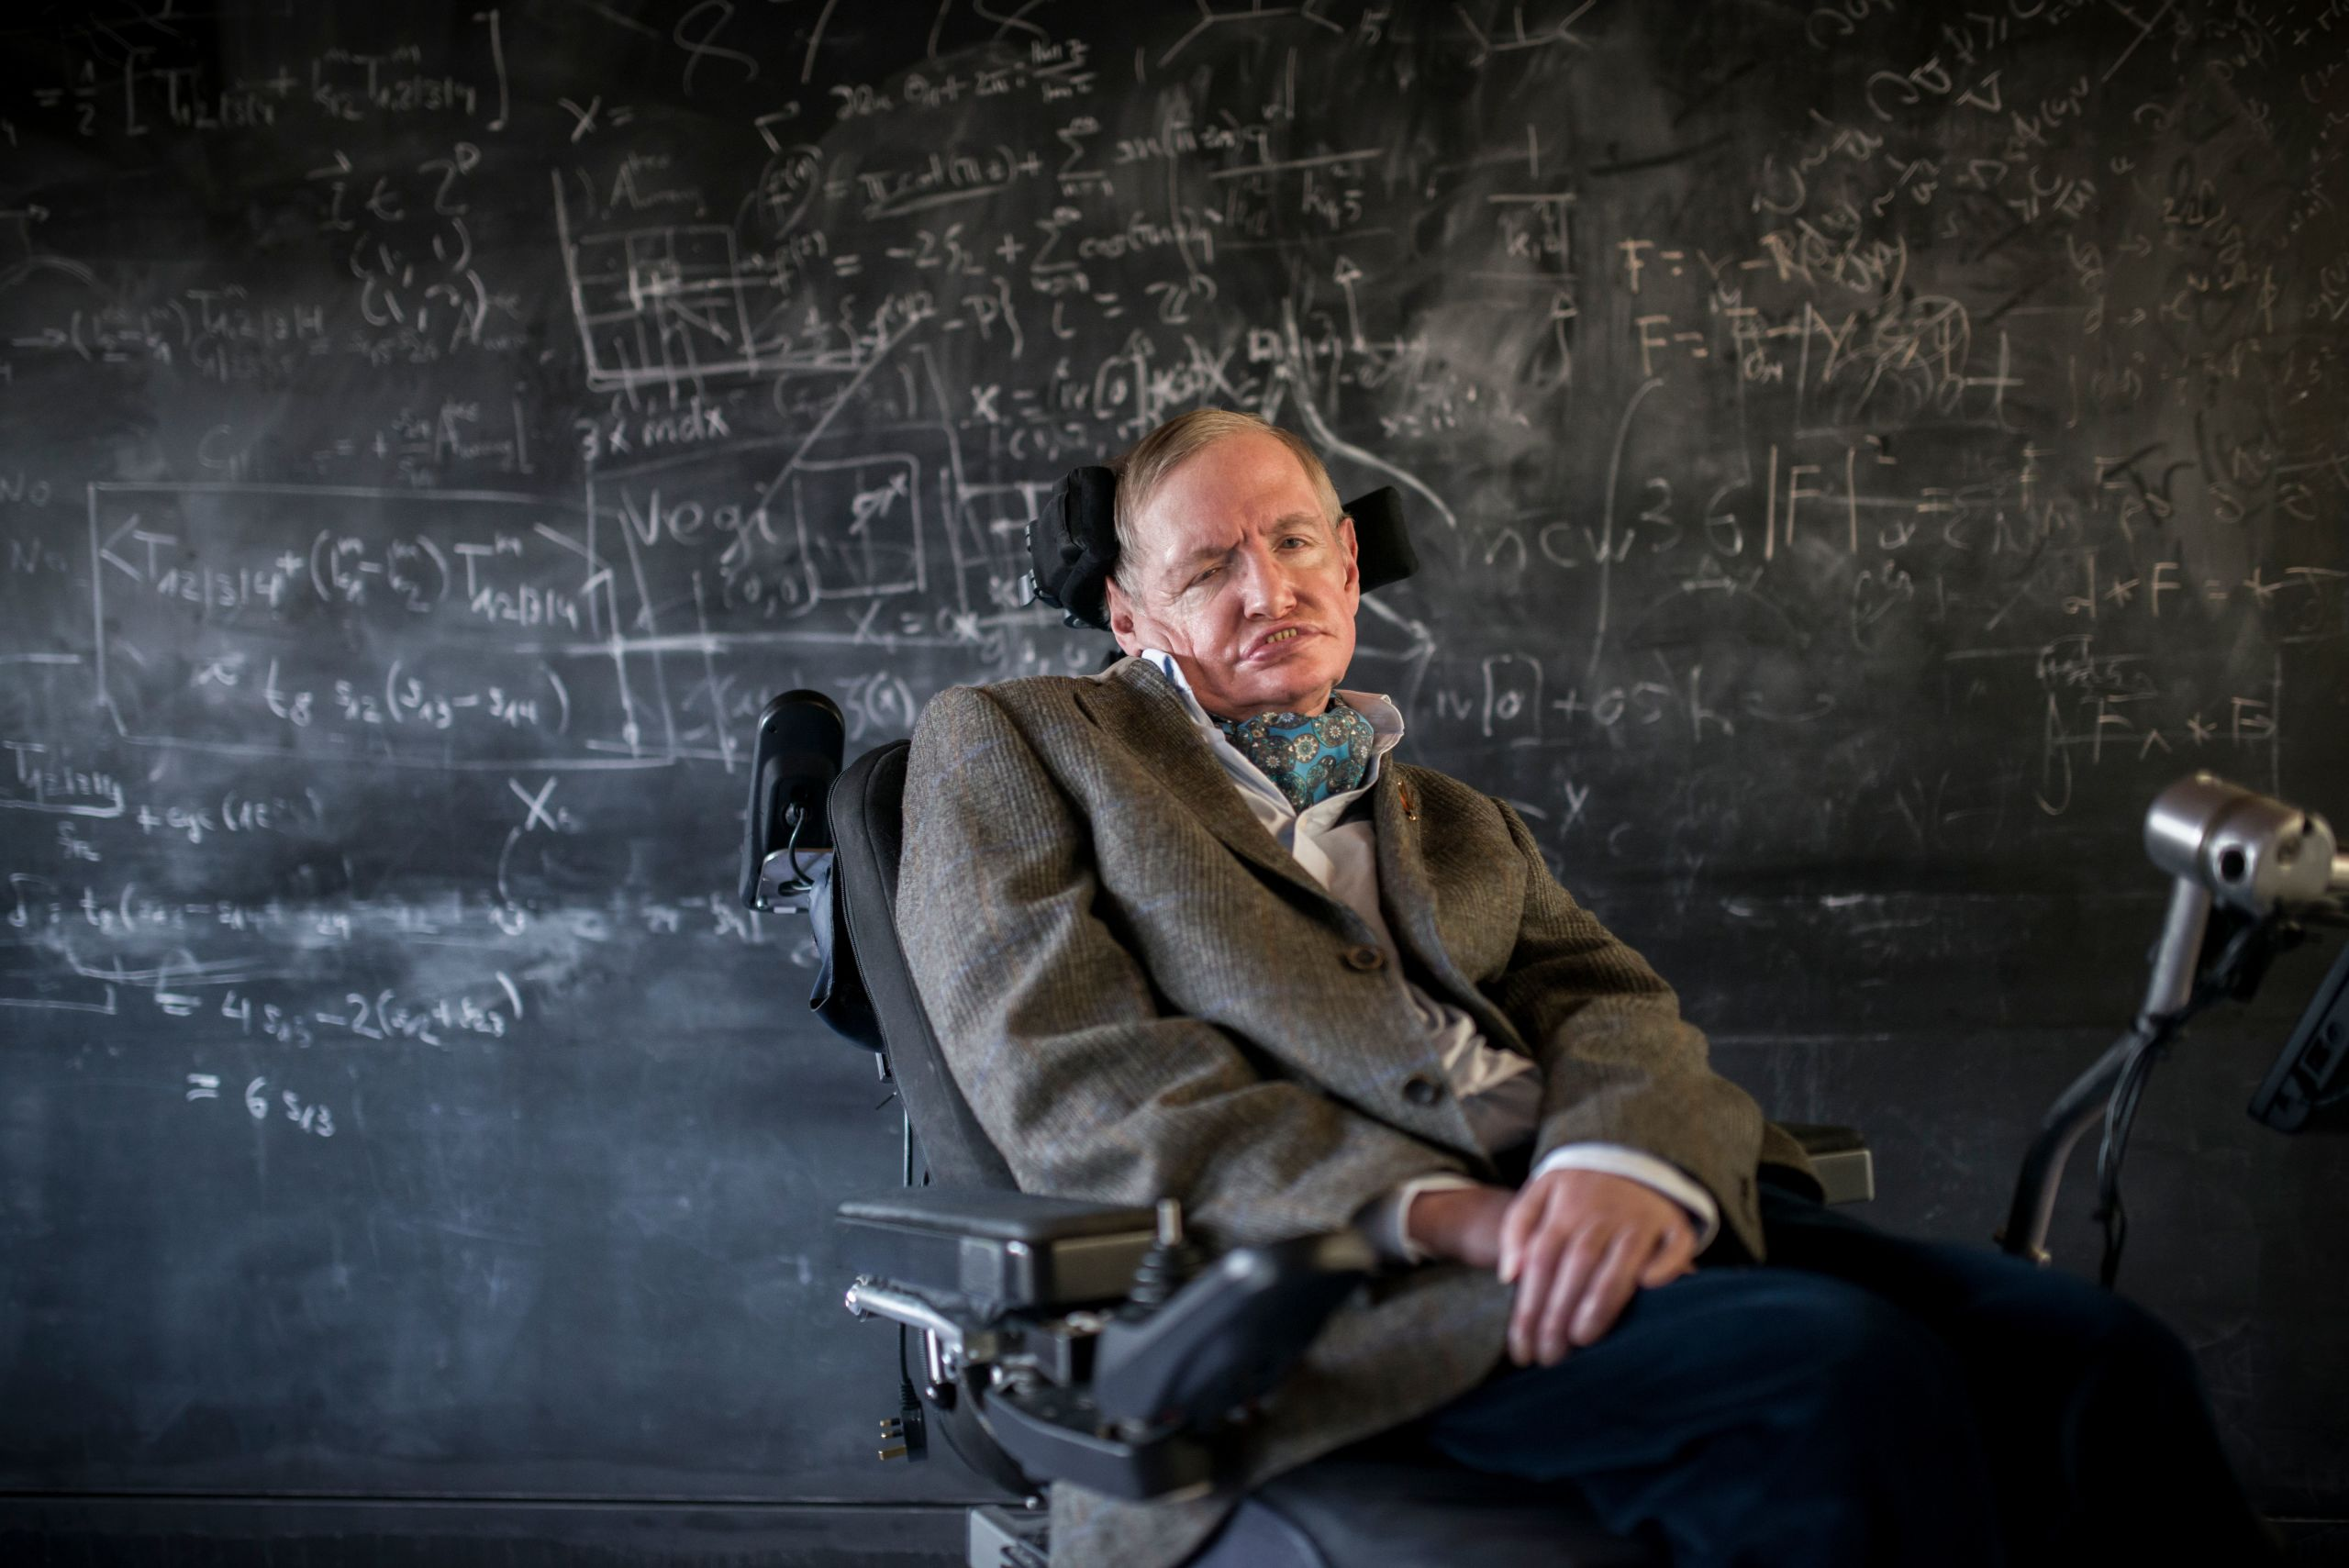 Stephen Hawking Archive saved for the nation